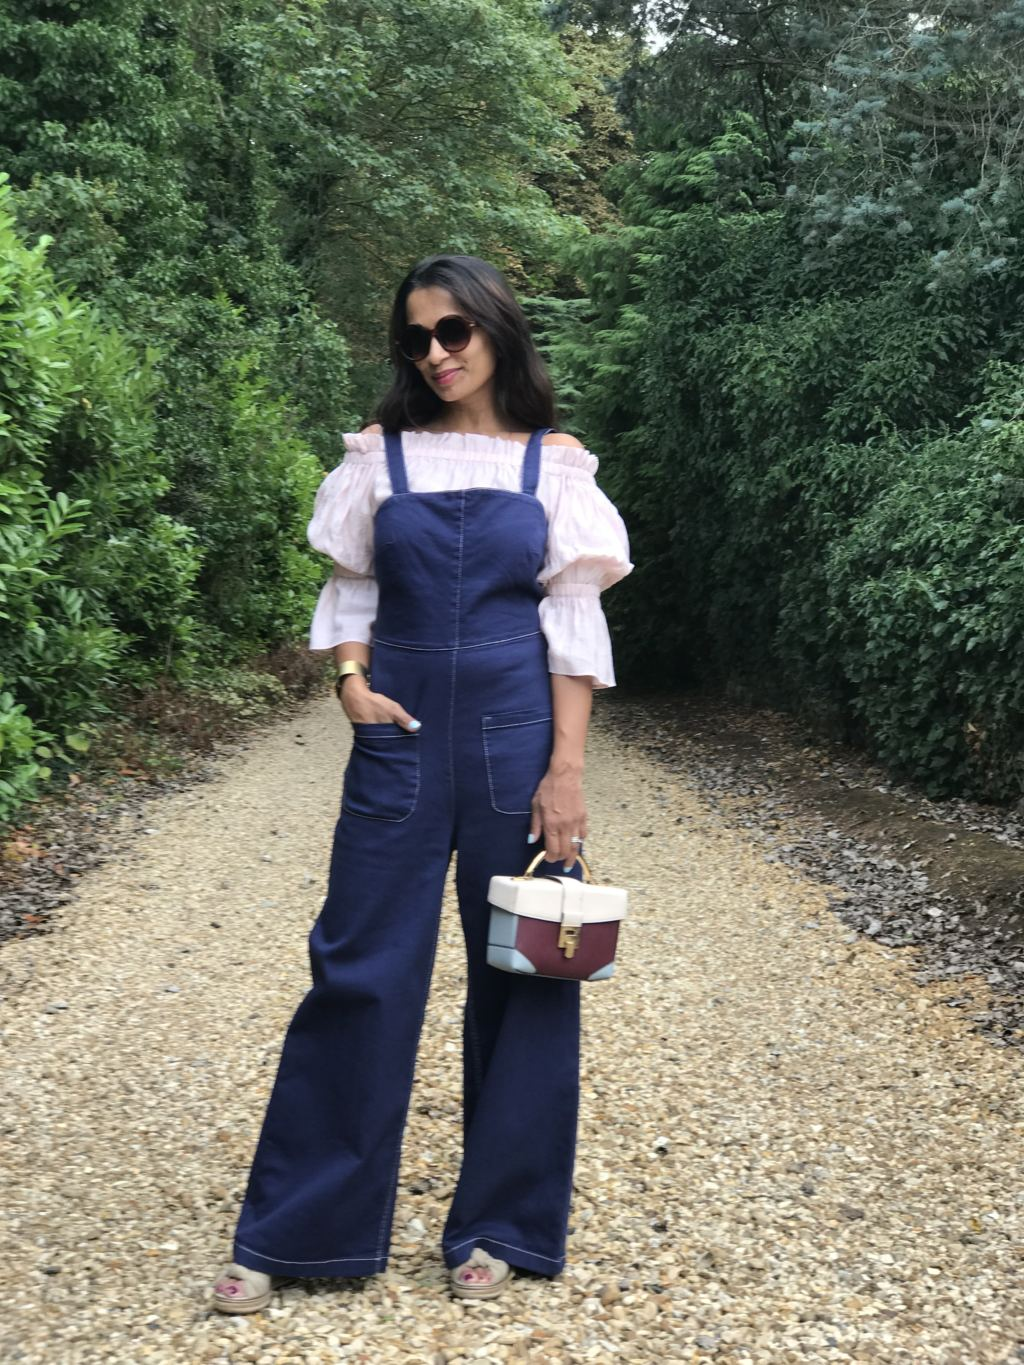 How to make a Denim Jumpsuit work for all seasons.